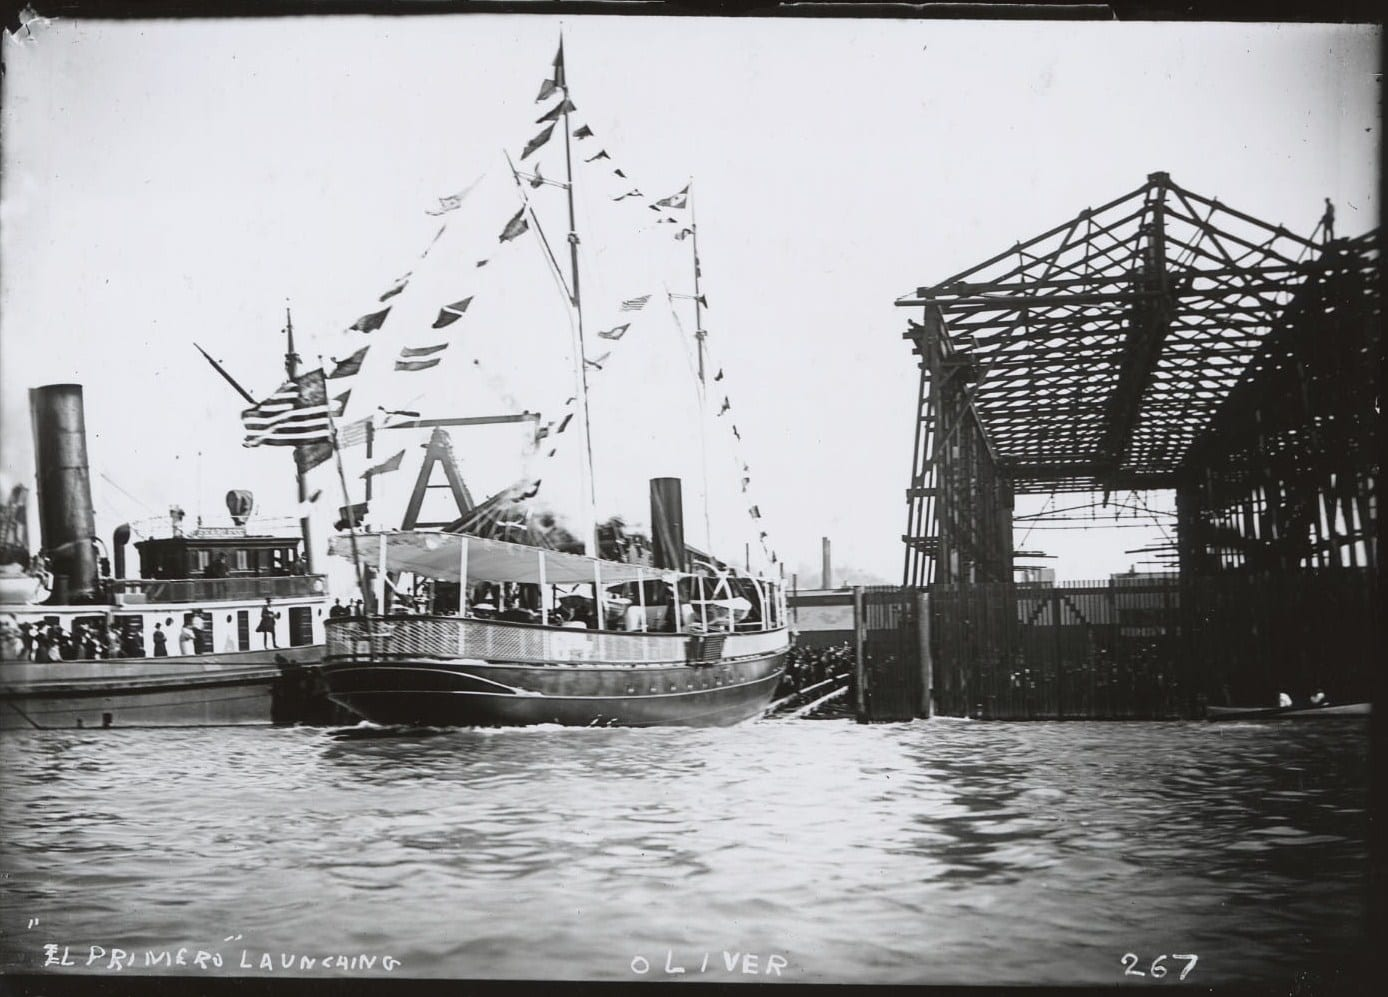 Hull 22, yacht EL PRIMERO owned by Edward Hopkins, launched in 1893.